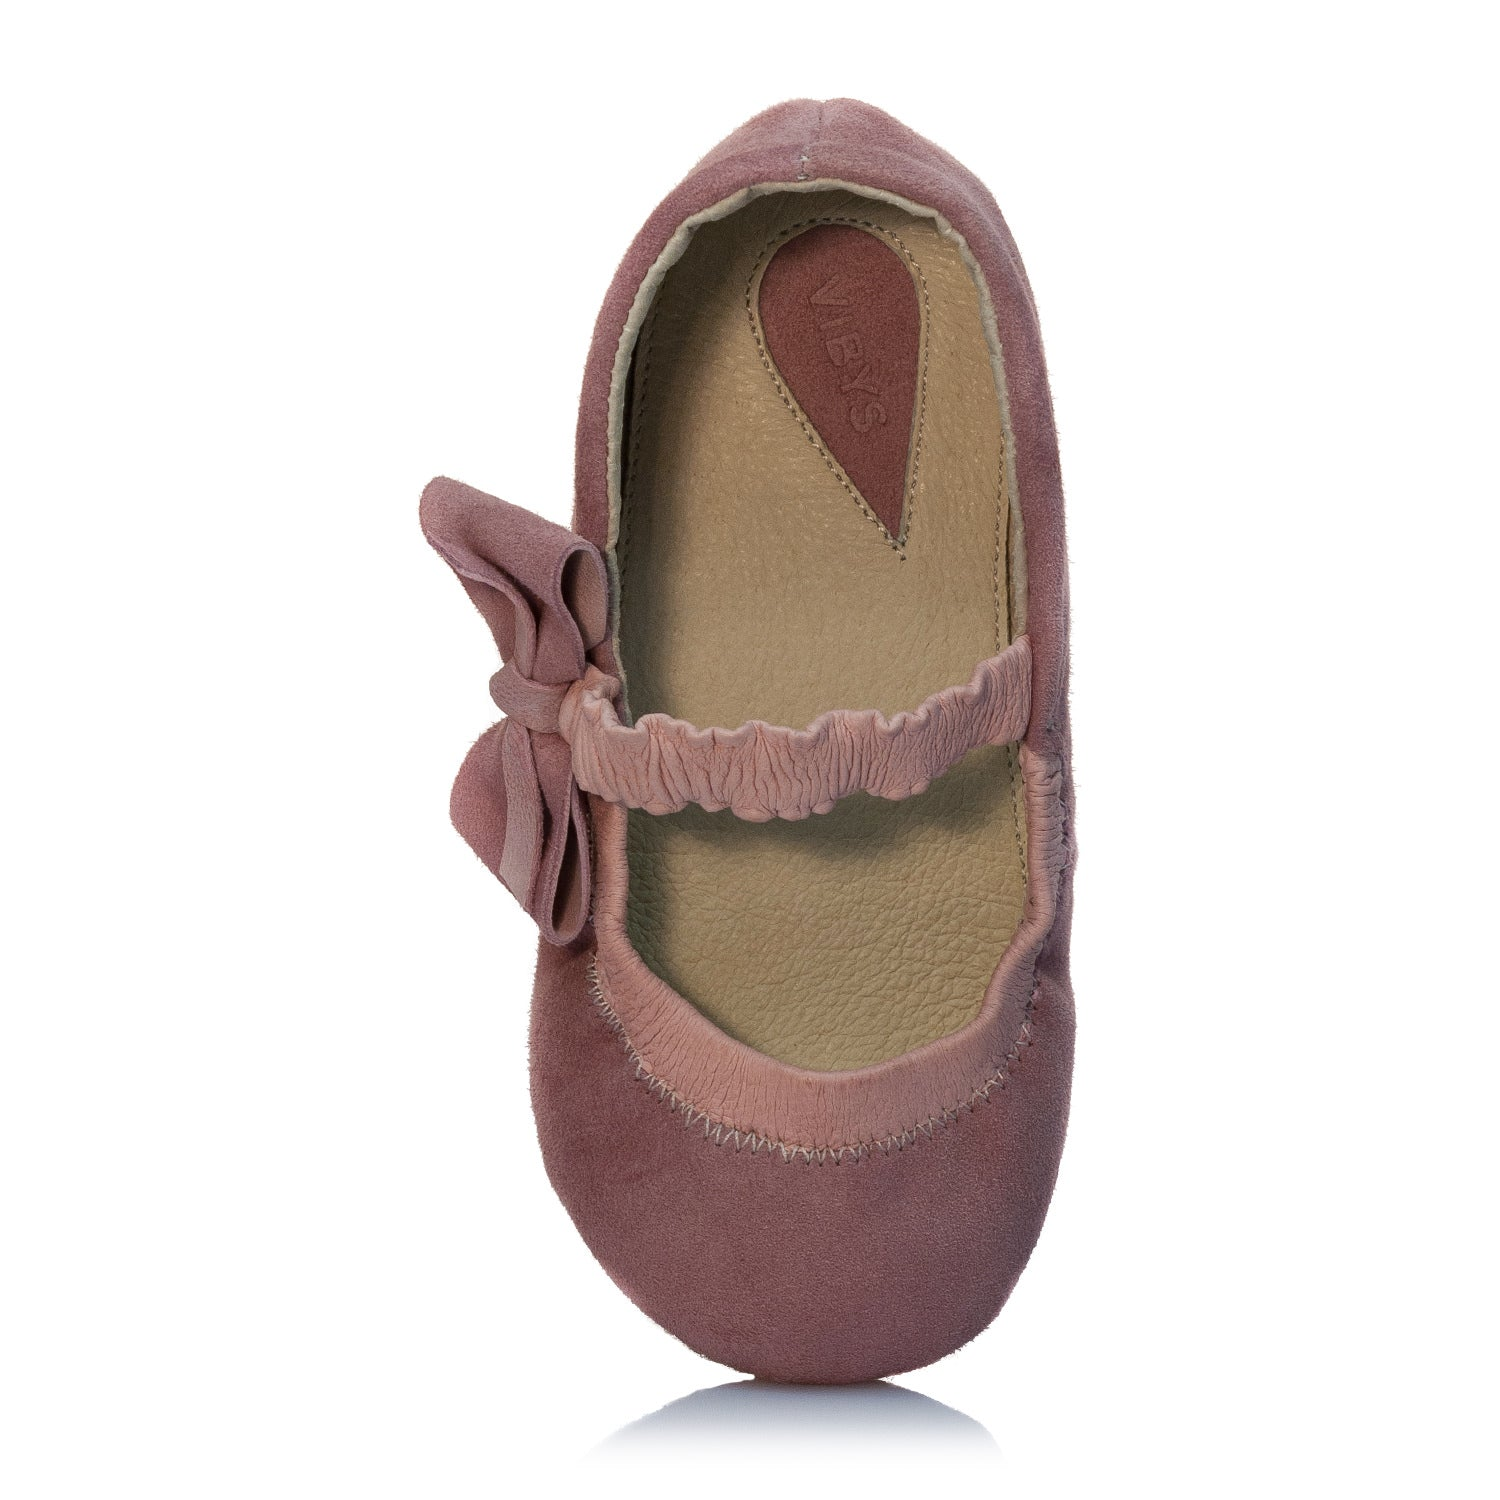 Vibys Barefoot Ballerina Shoes - Kiki Ballerina - top view